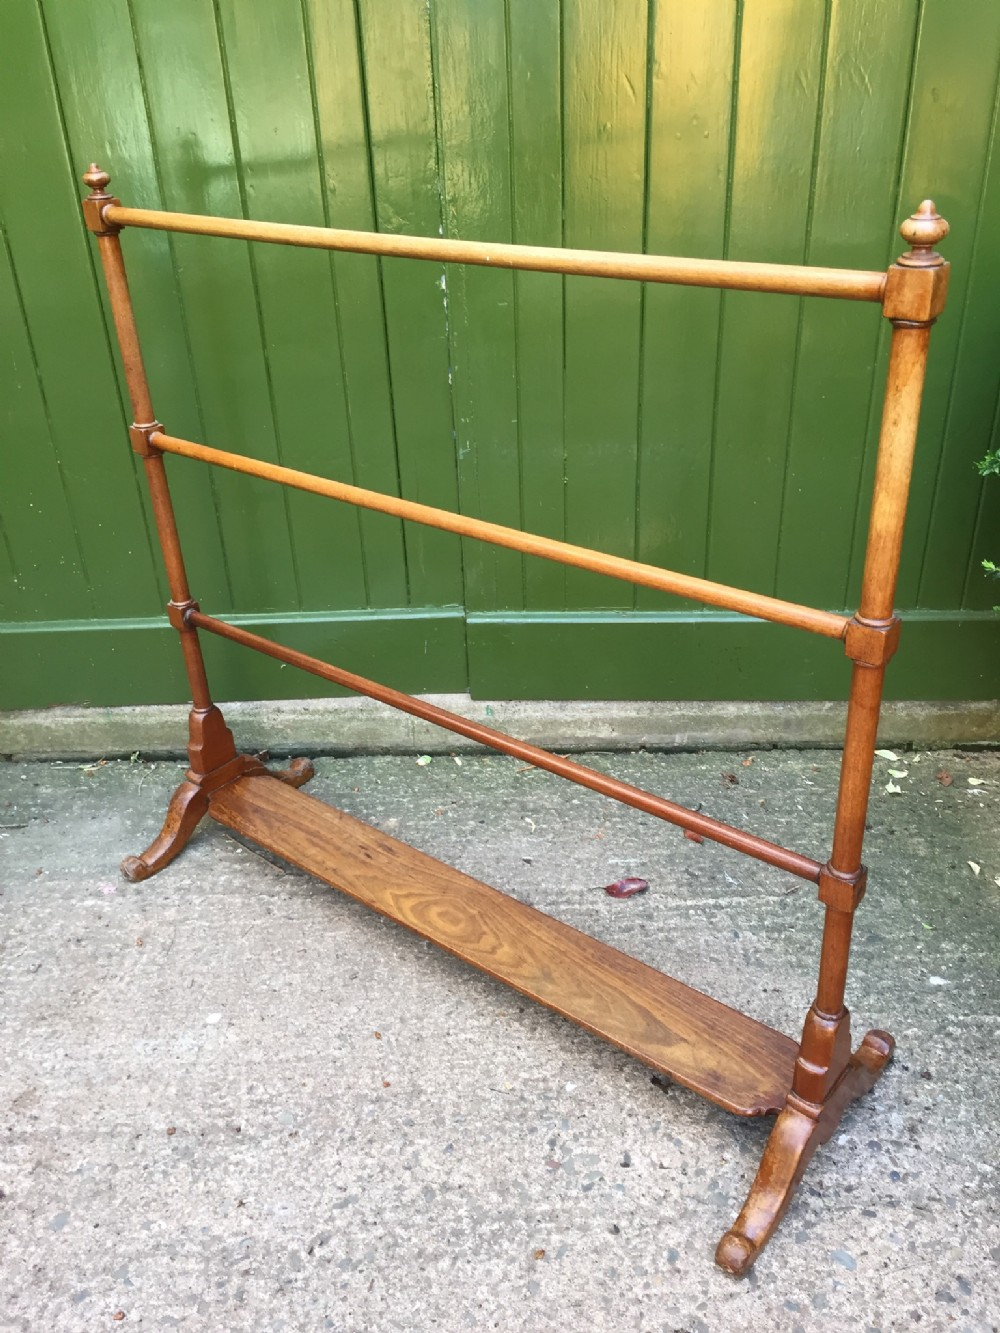 early c19th regency period mahogany 'countryhouse' clothes towel or garment rail of unusually large scale